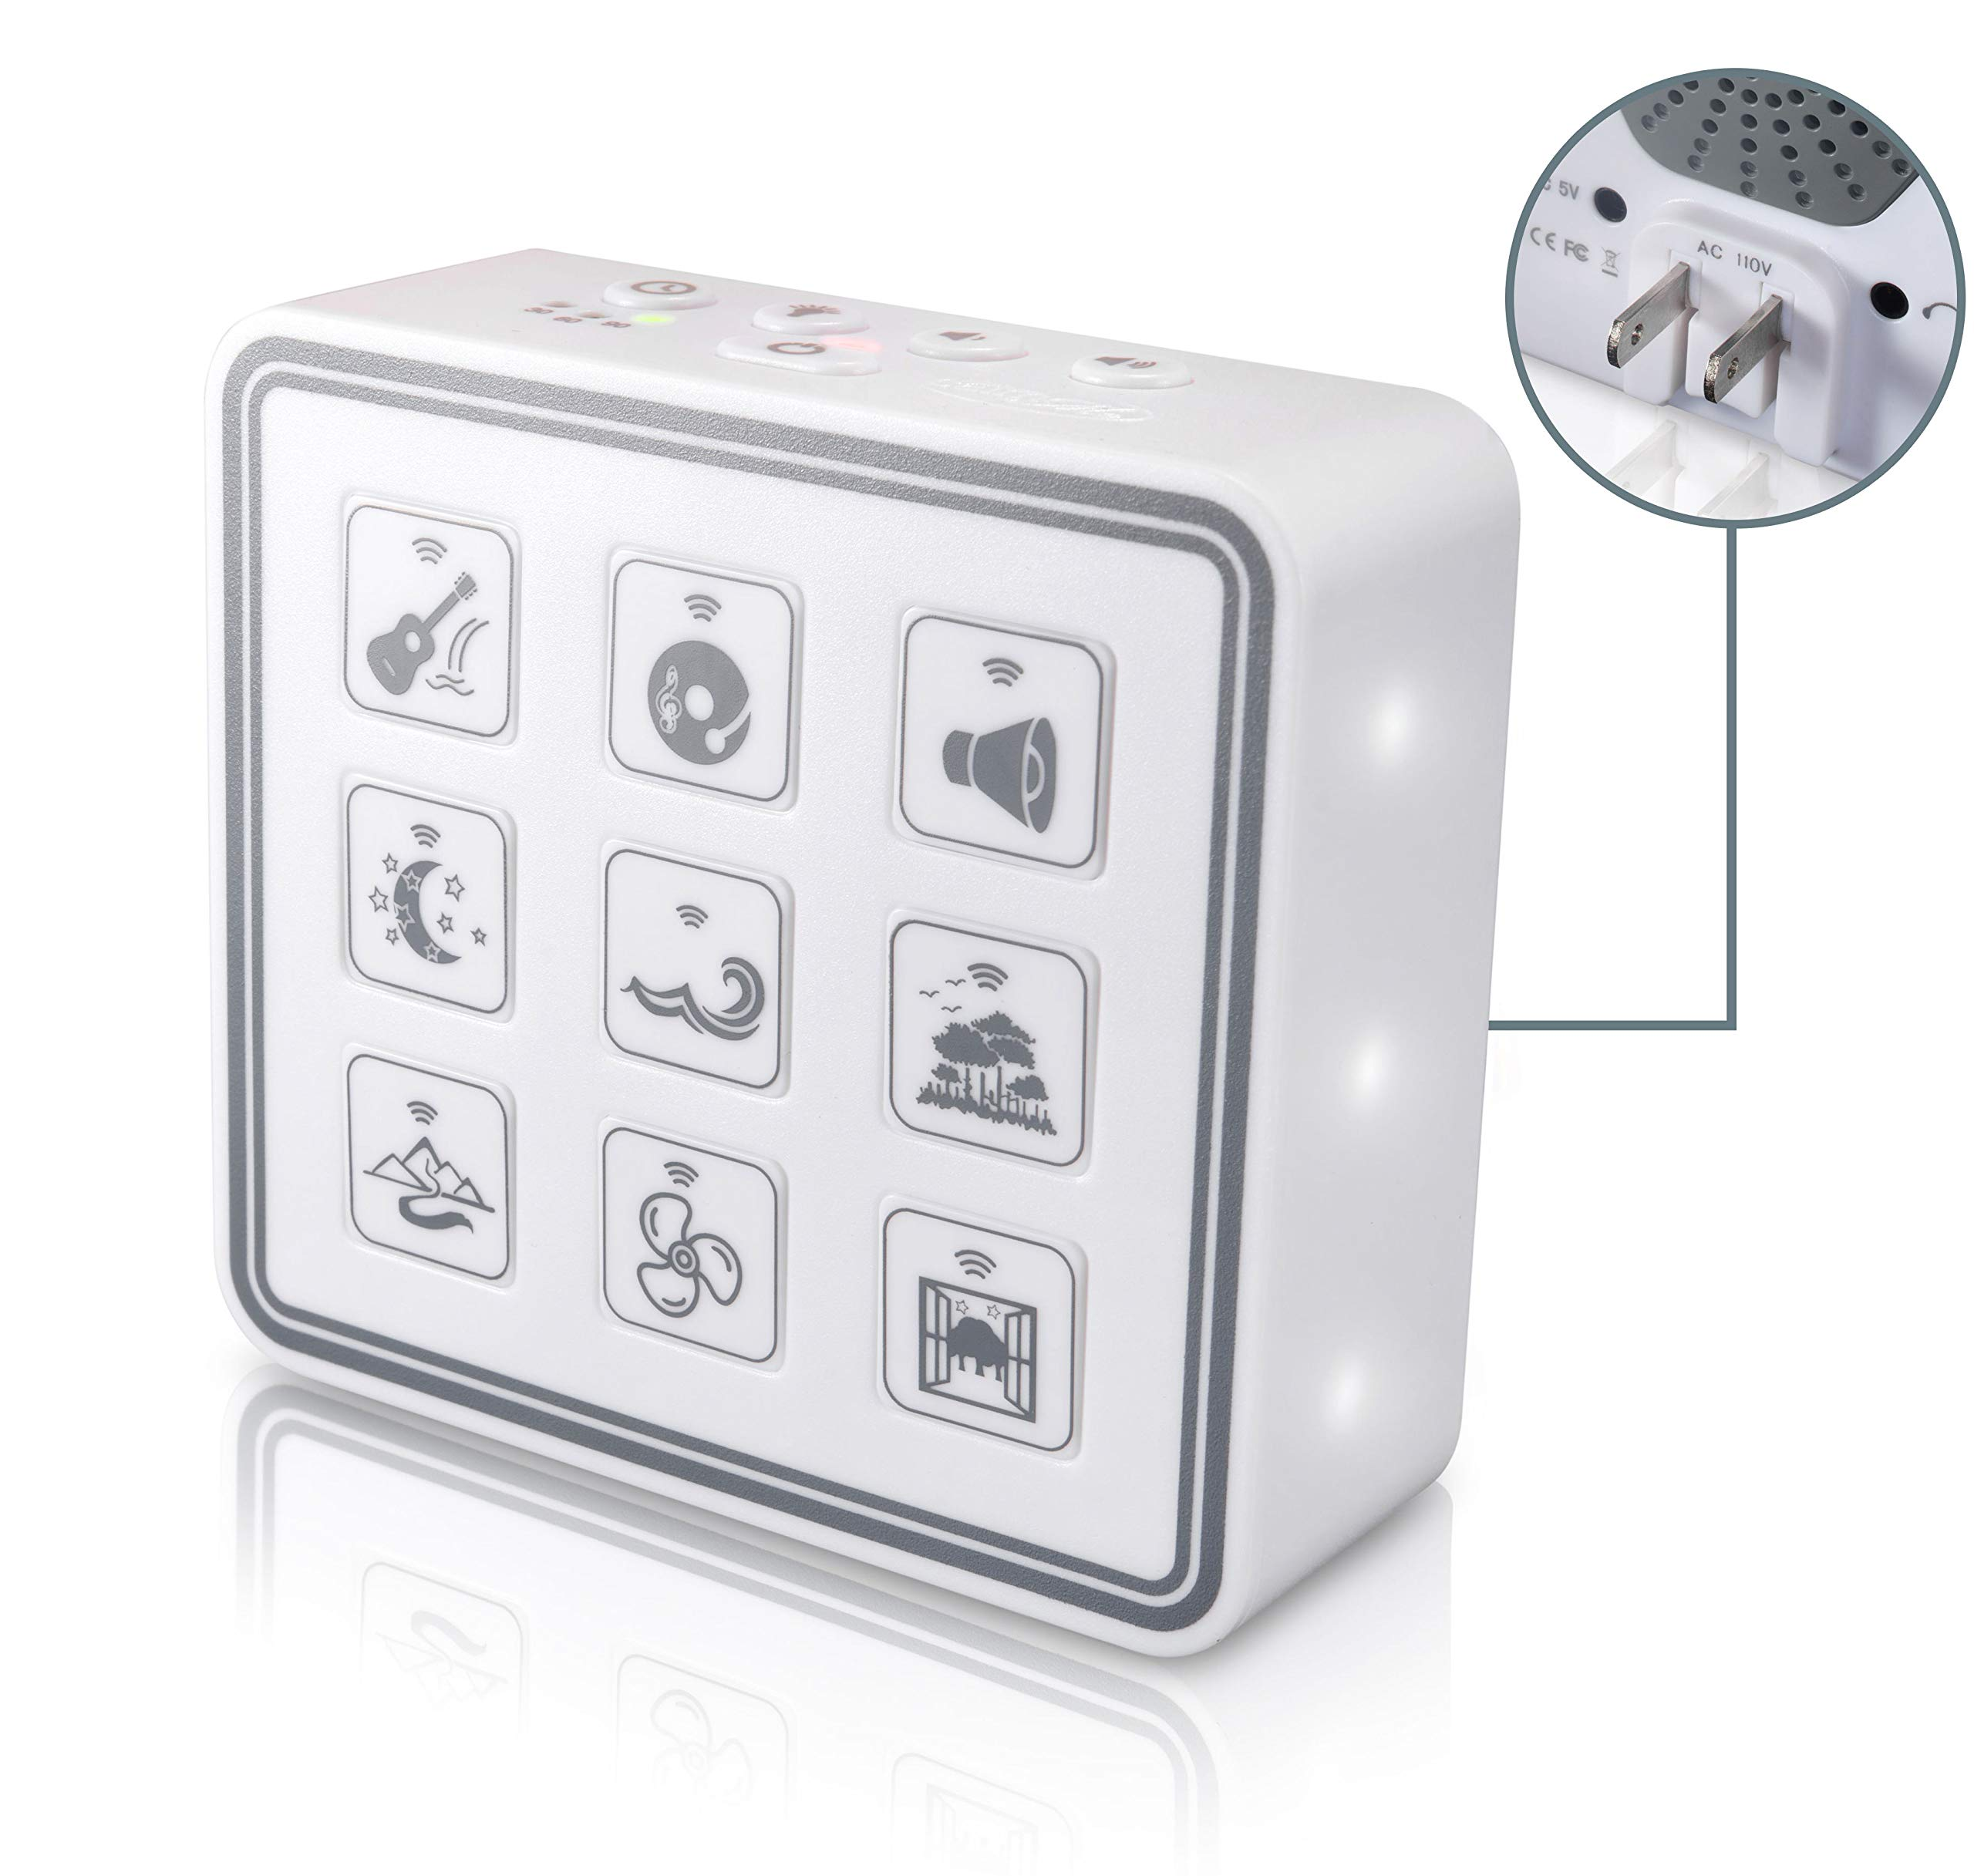 Portable & Compact Plug-in Nightlight White Noise Sound Machine-Relaxing Sleep Therapy for Adults & Baby w/9 Natural Sound Settings, Auto Timer, Headphone Jack & USB Cord - for Home & Travel (White) by Calm Me